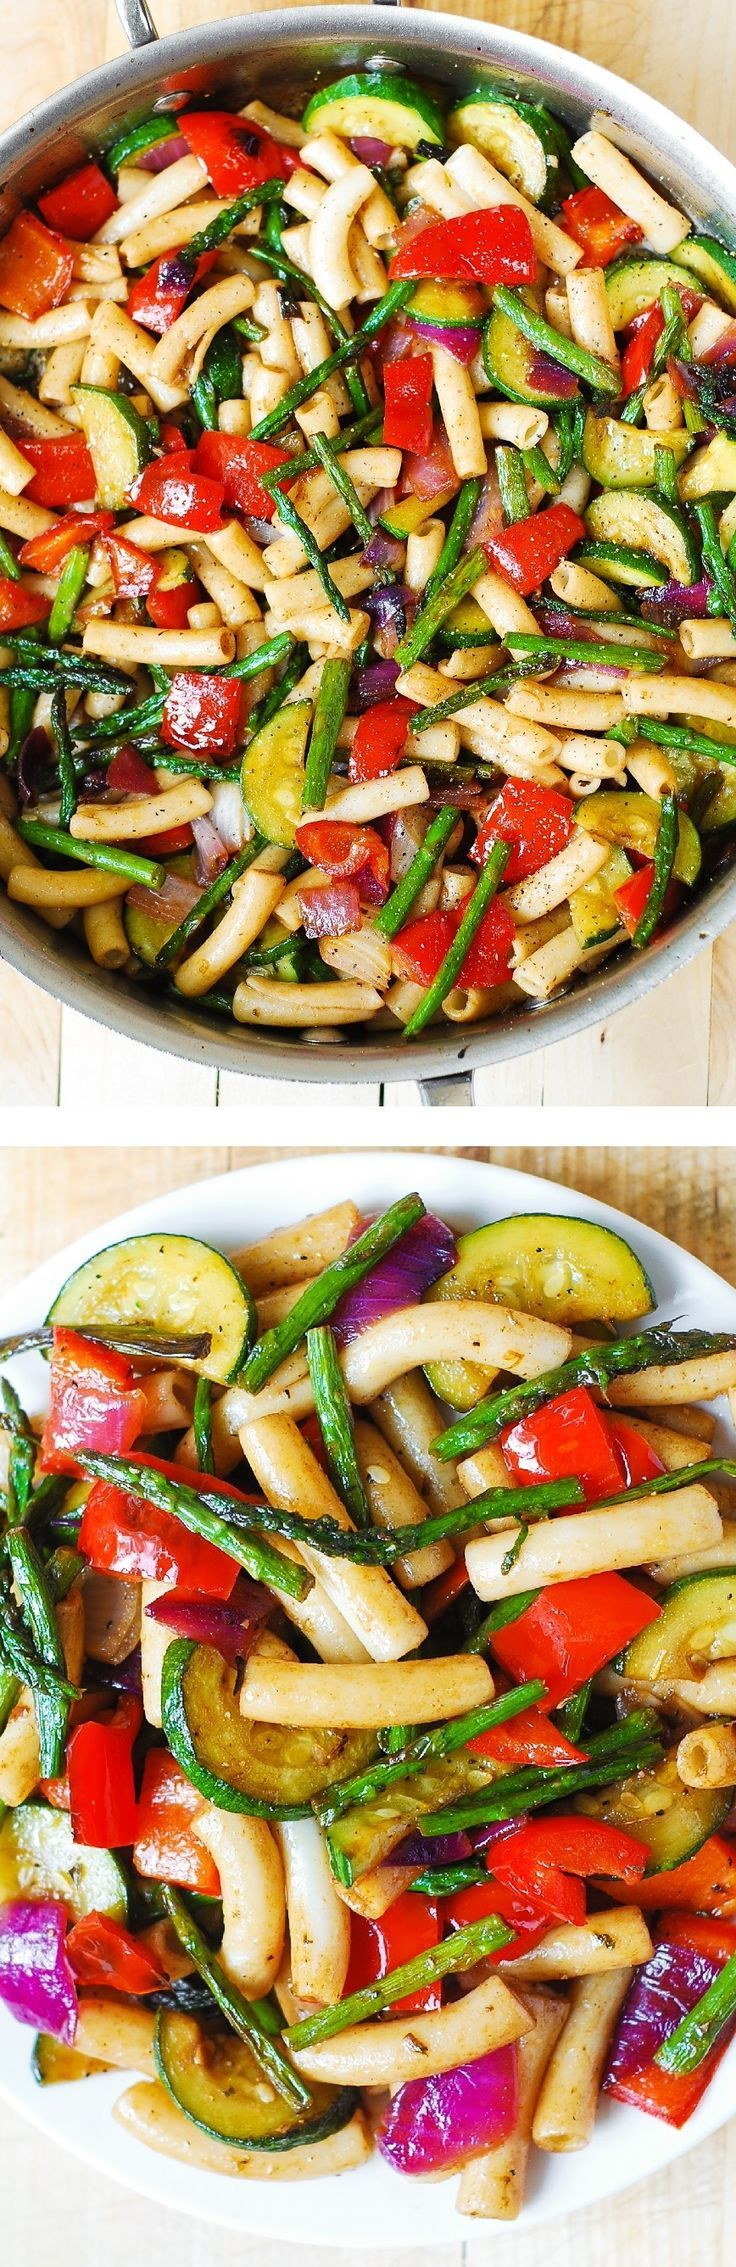 Healthy Pasta Salad with Roasted Vegetables - a delicious way to utilize lots of veggies in a healthy, satisfying main dish! #BHG #sponsored